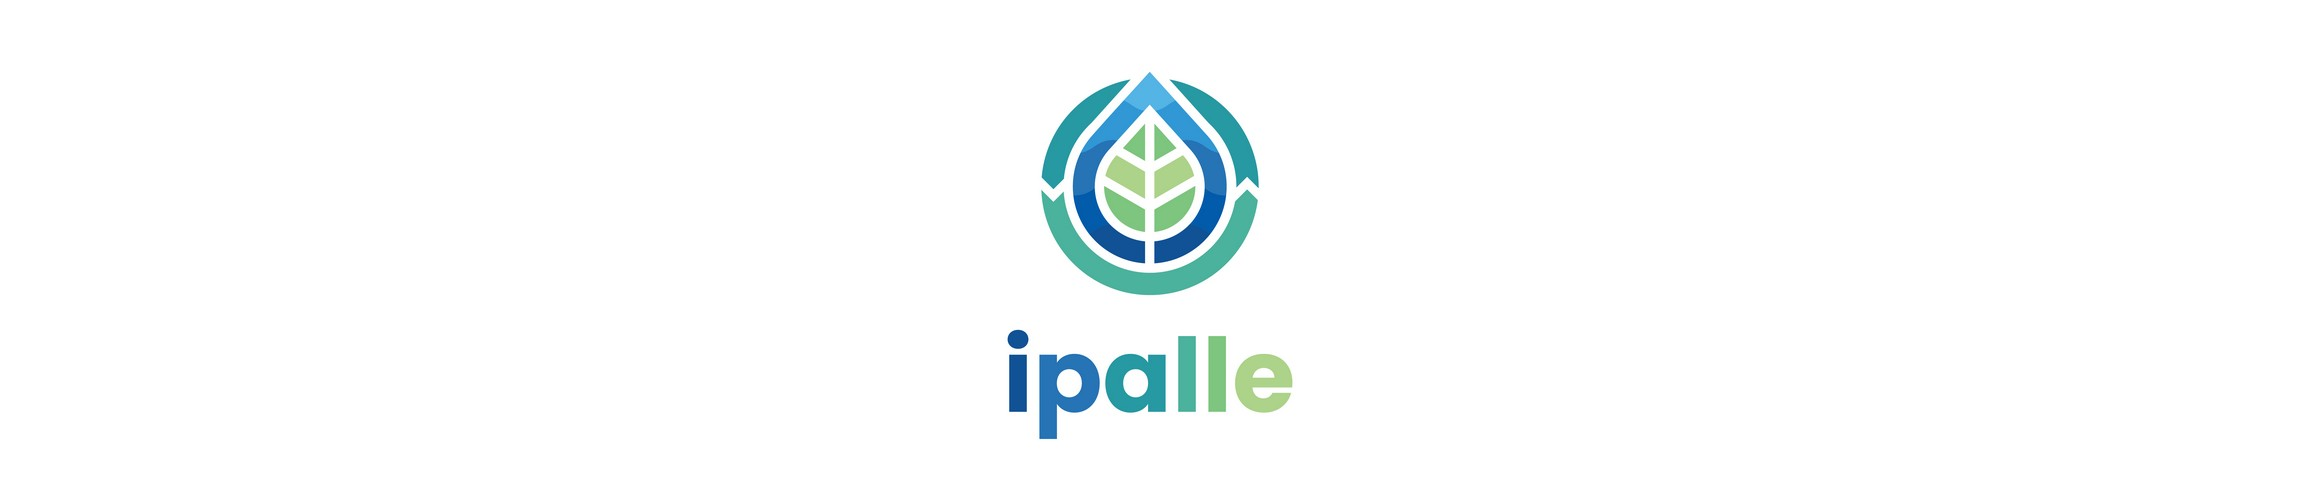 ipalle logo long 2